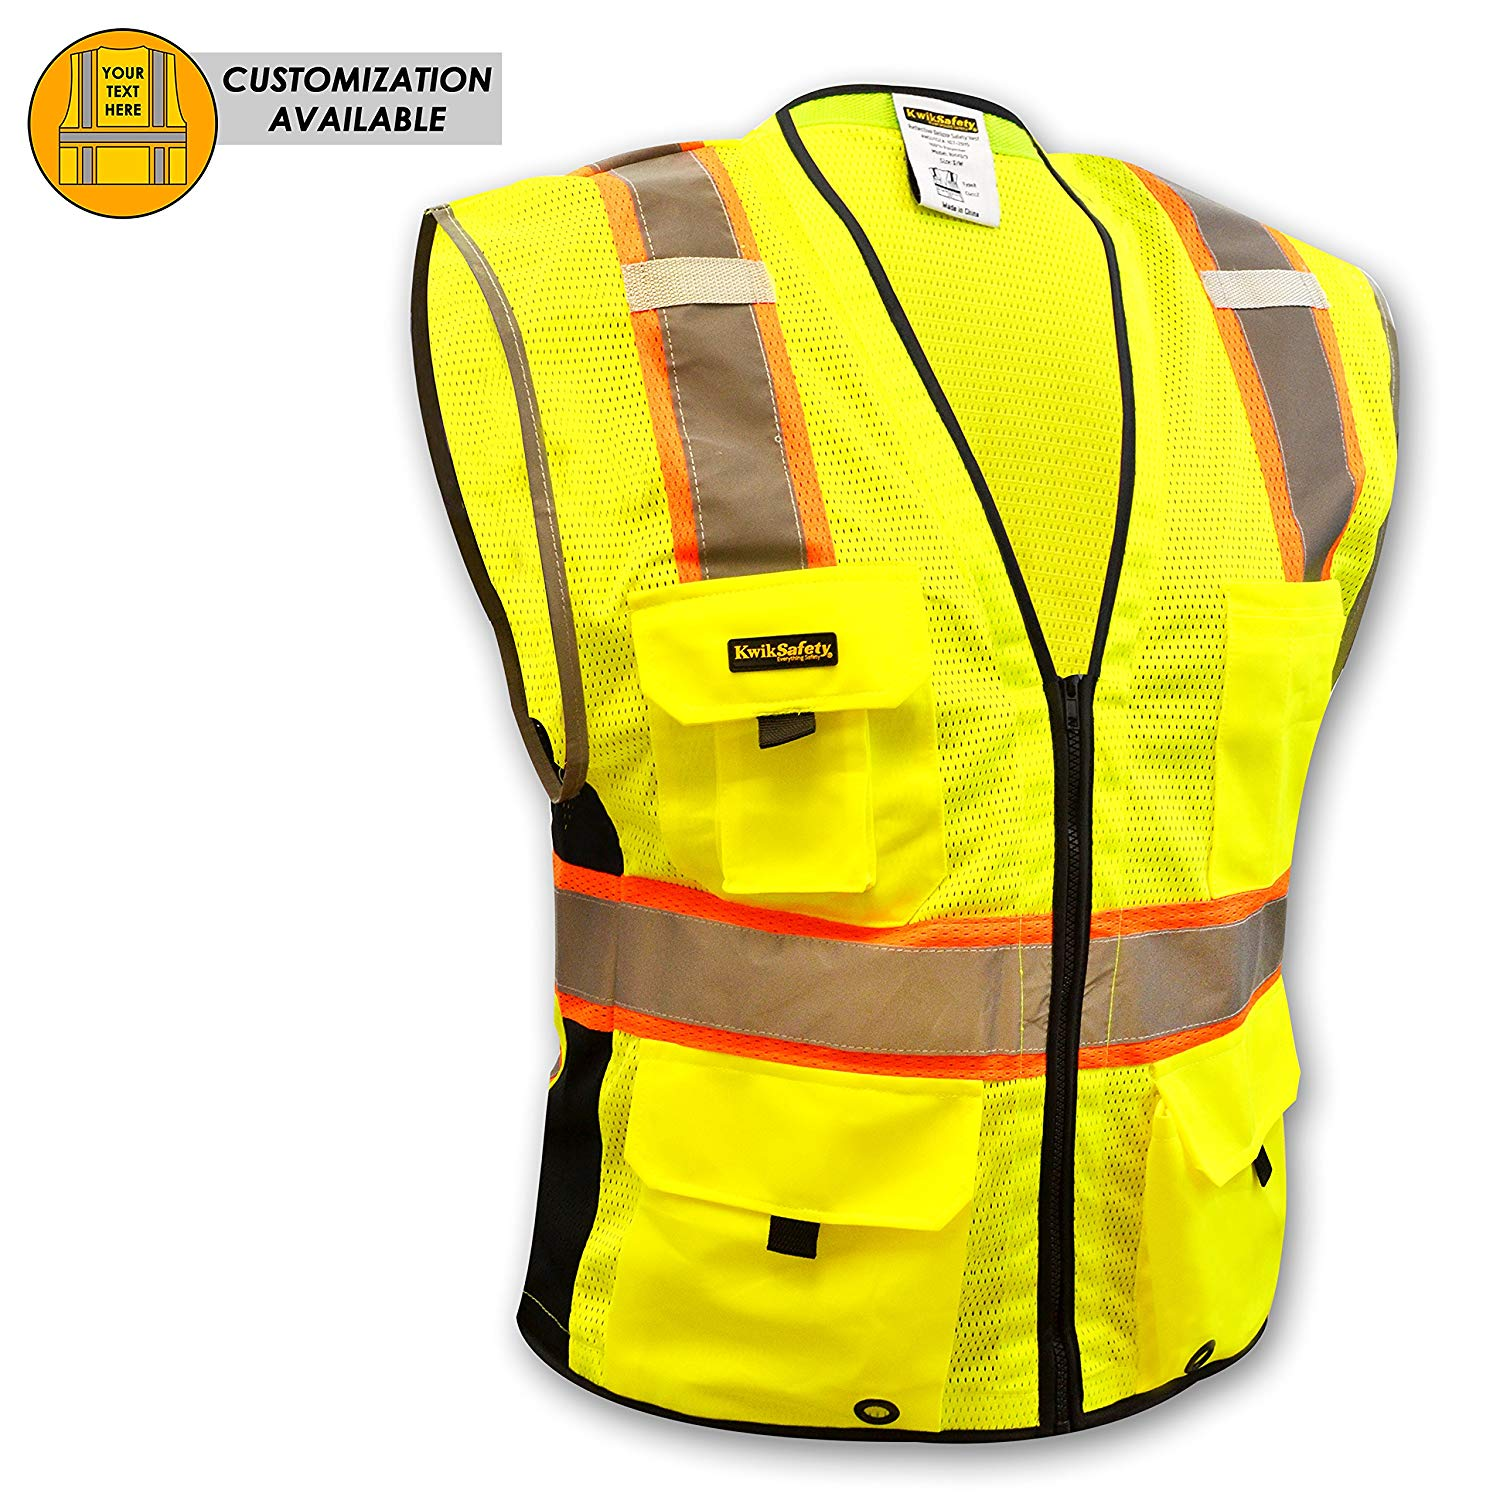 Safety Clothing Security & Protection Hi Vis Two Tone Safety Vest With X On The Back Reflective Waistcoat Breathable Mesh Vest Orders Are Welcome.